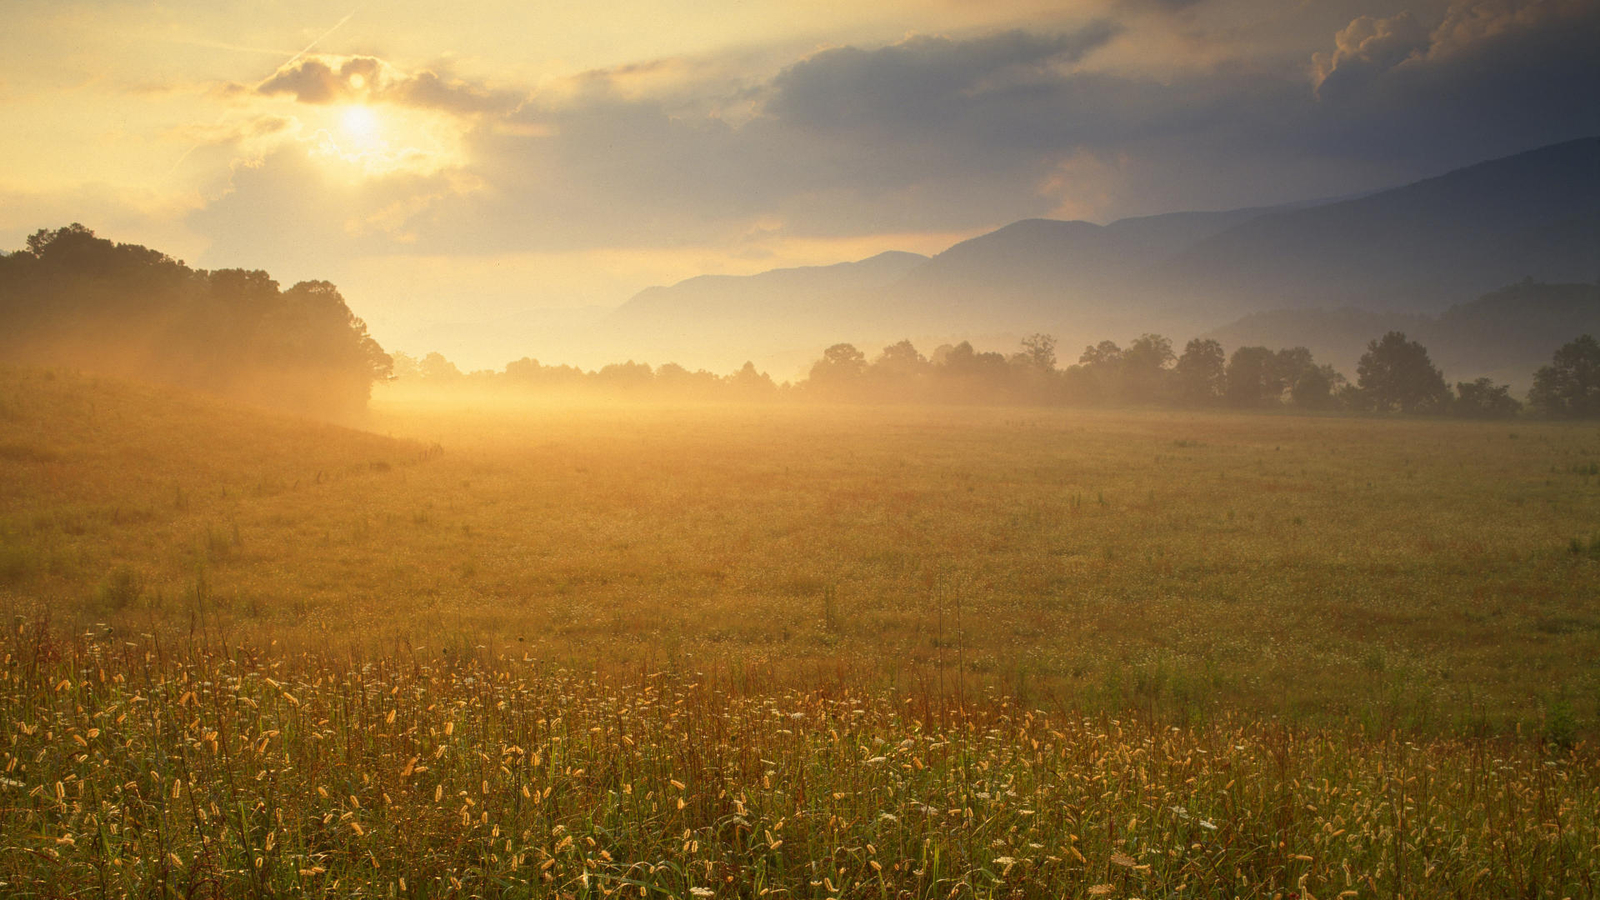 Natural scenery Wallpaper Download 49391